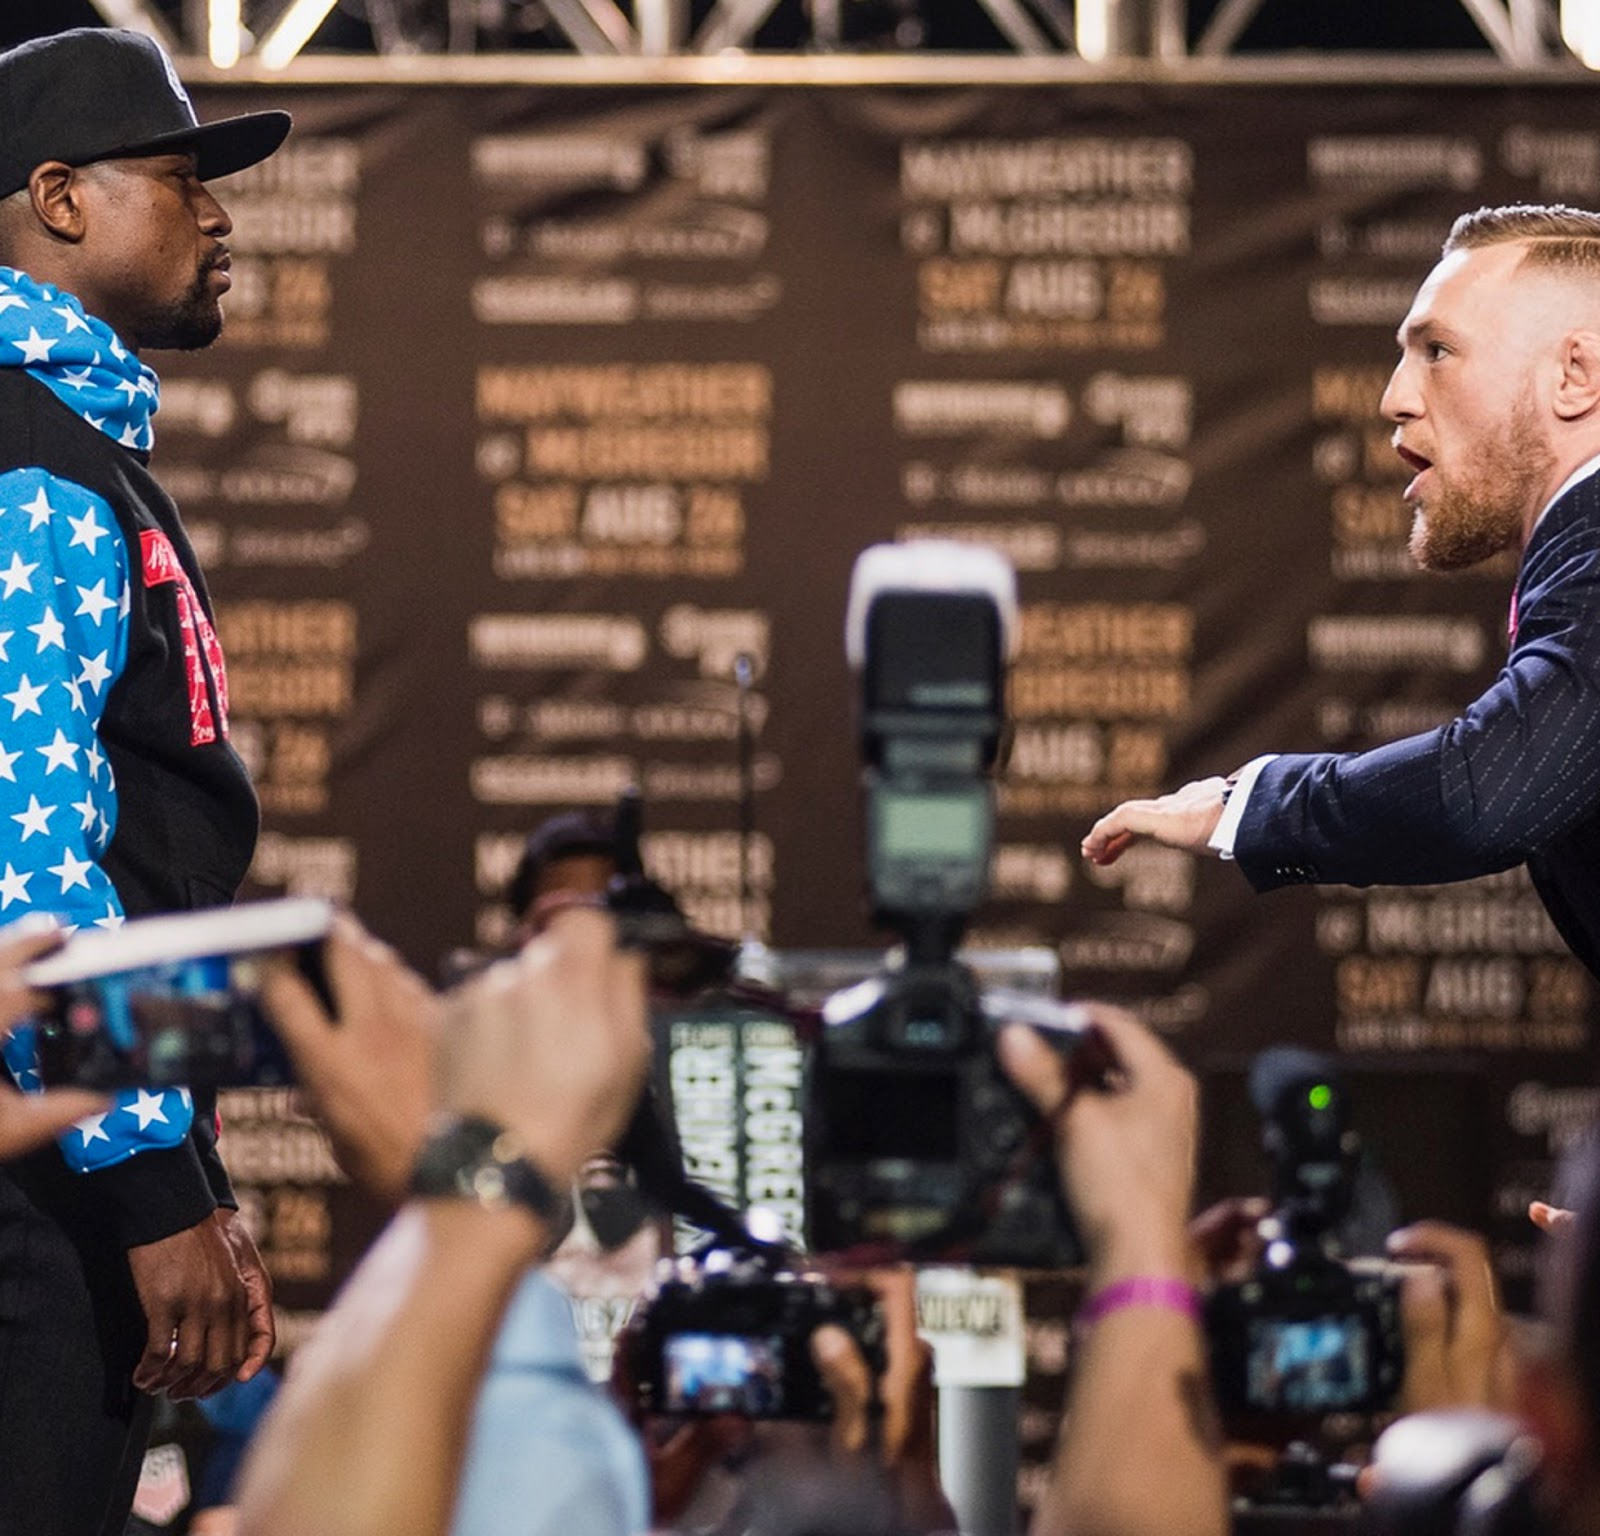 FLOYD MAYWEATHER VS. CONOR MCGREGOR 12